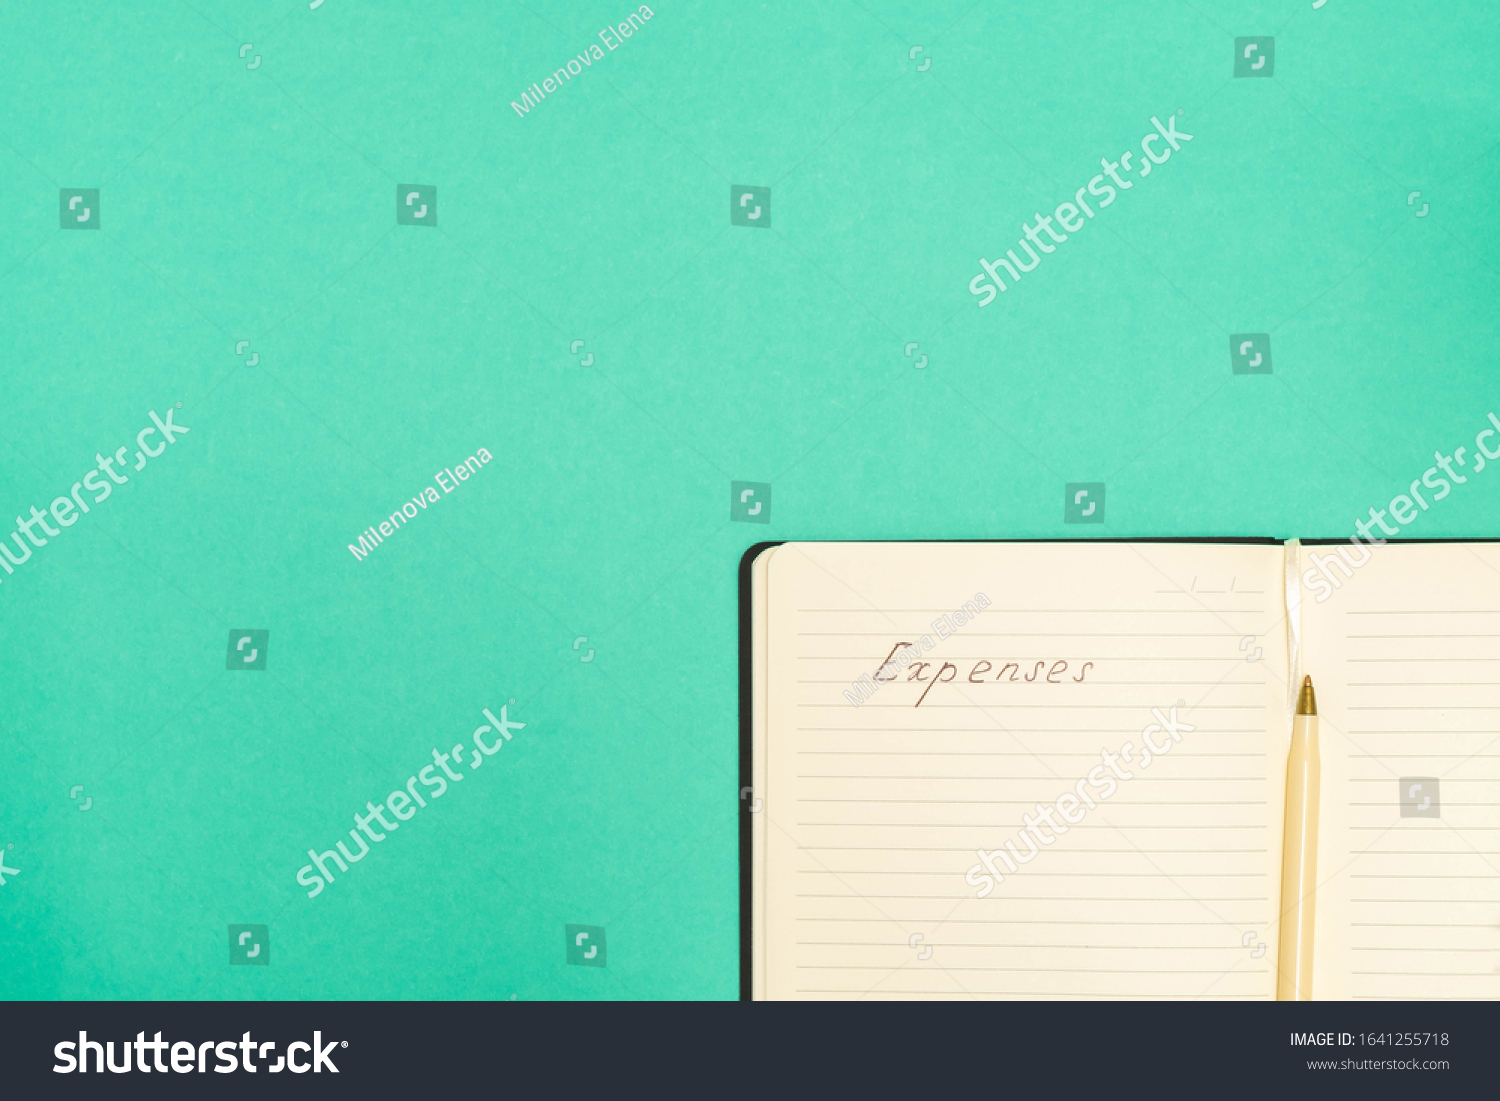 Expense calculation concept. Top view of pen and notepad with handwritten words Expenses on green background with copy space #1641255718